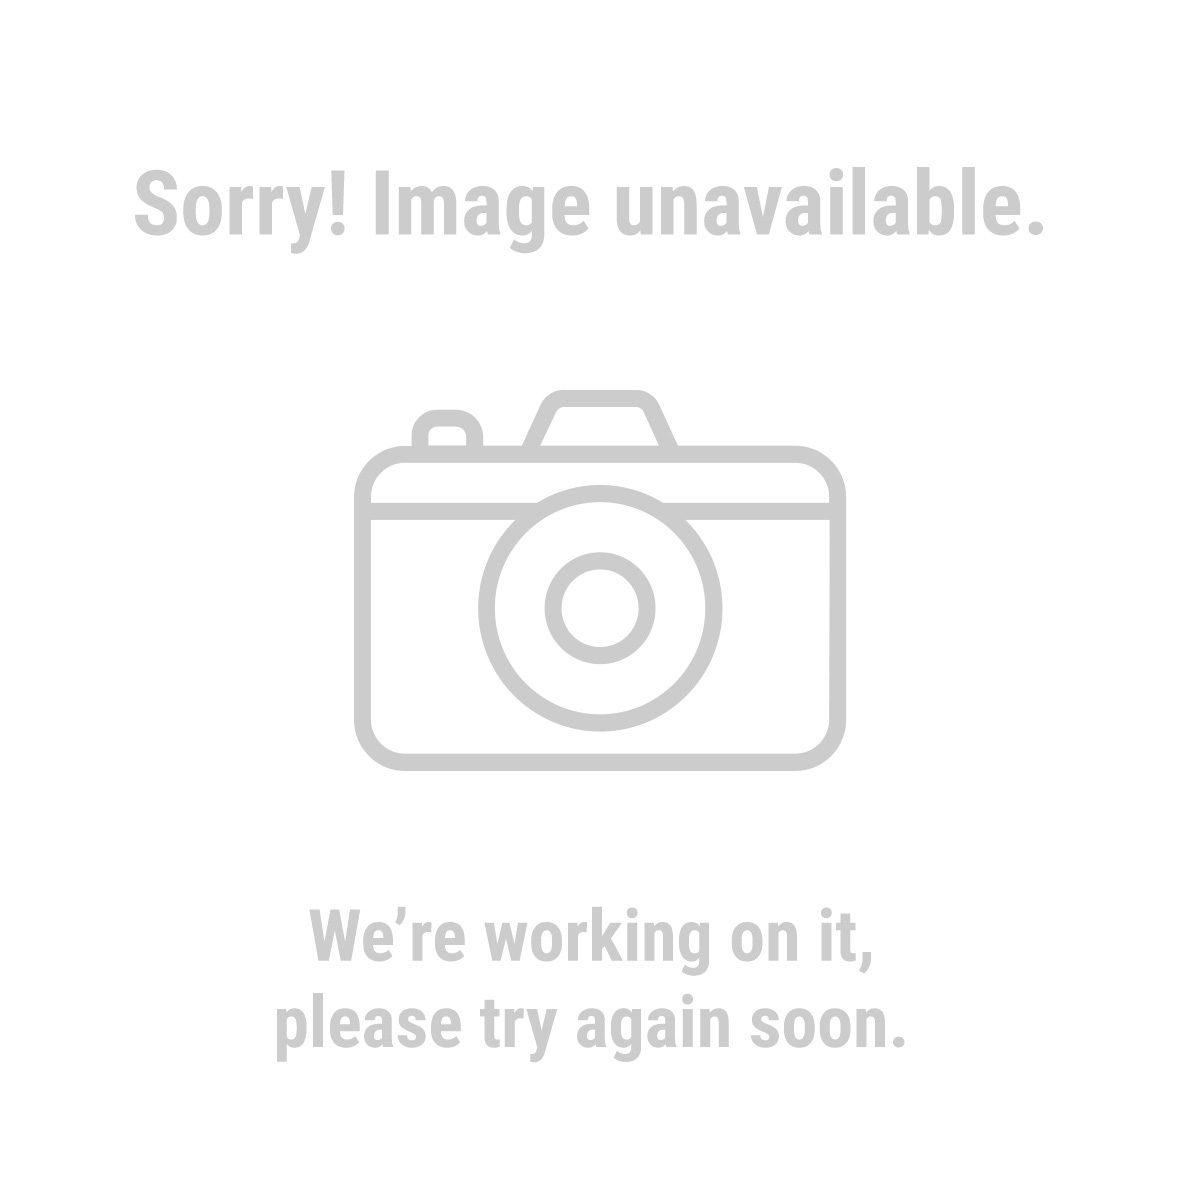 Central Pneumatic 62802 10 gal 2.5 HP 125 PSI Oil Lube Air Compressor